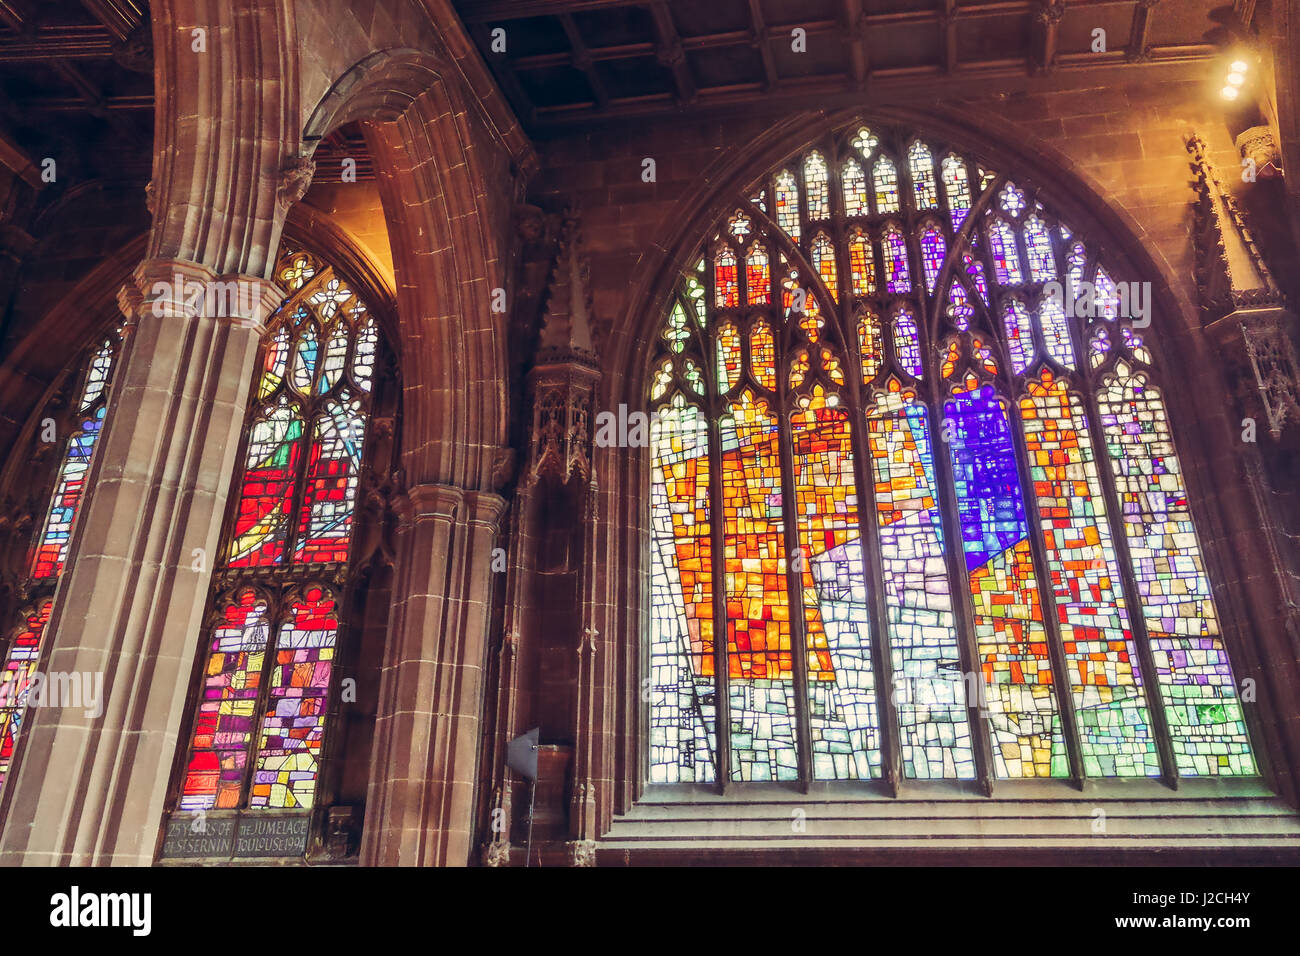 Beautiful stained glass windows and colums of the Manchester Cathedral in UK - Stock Image